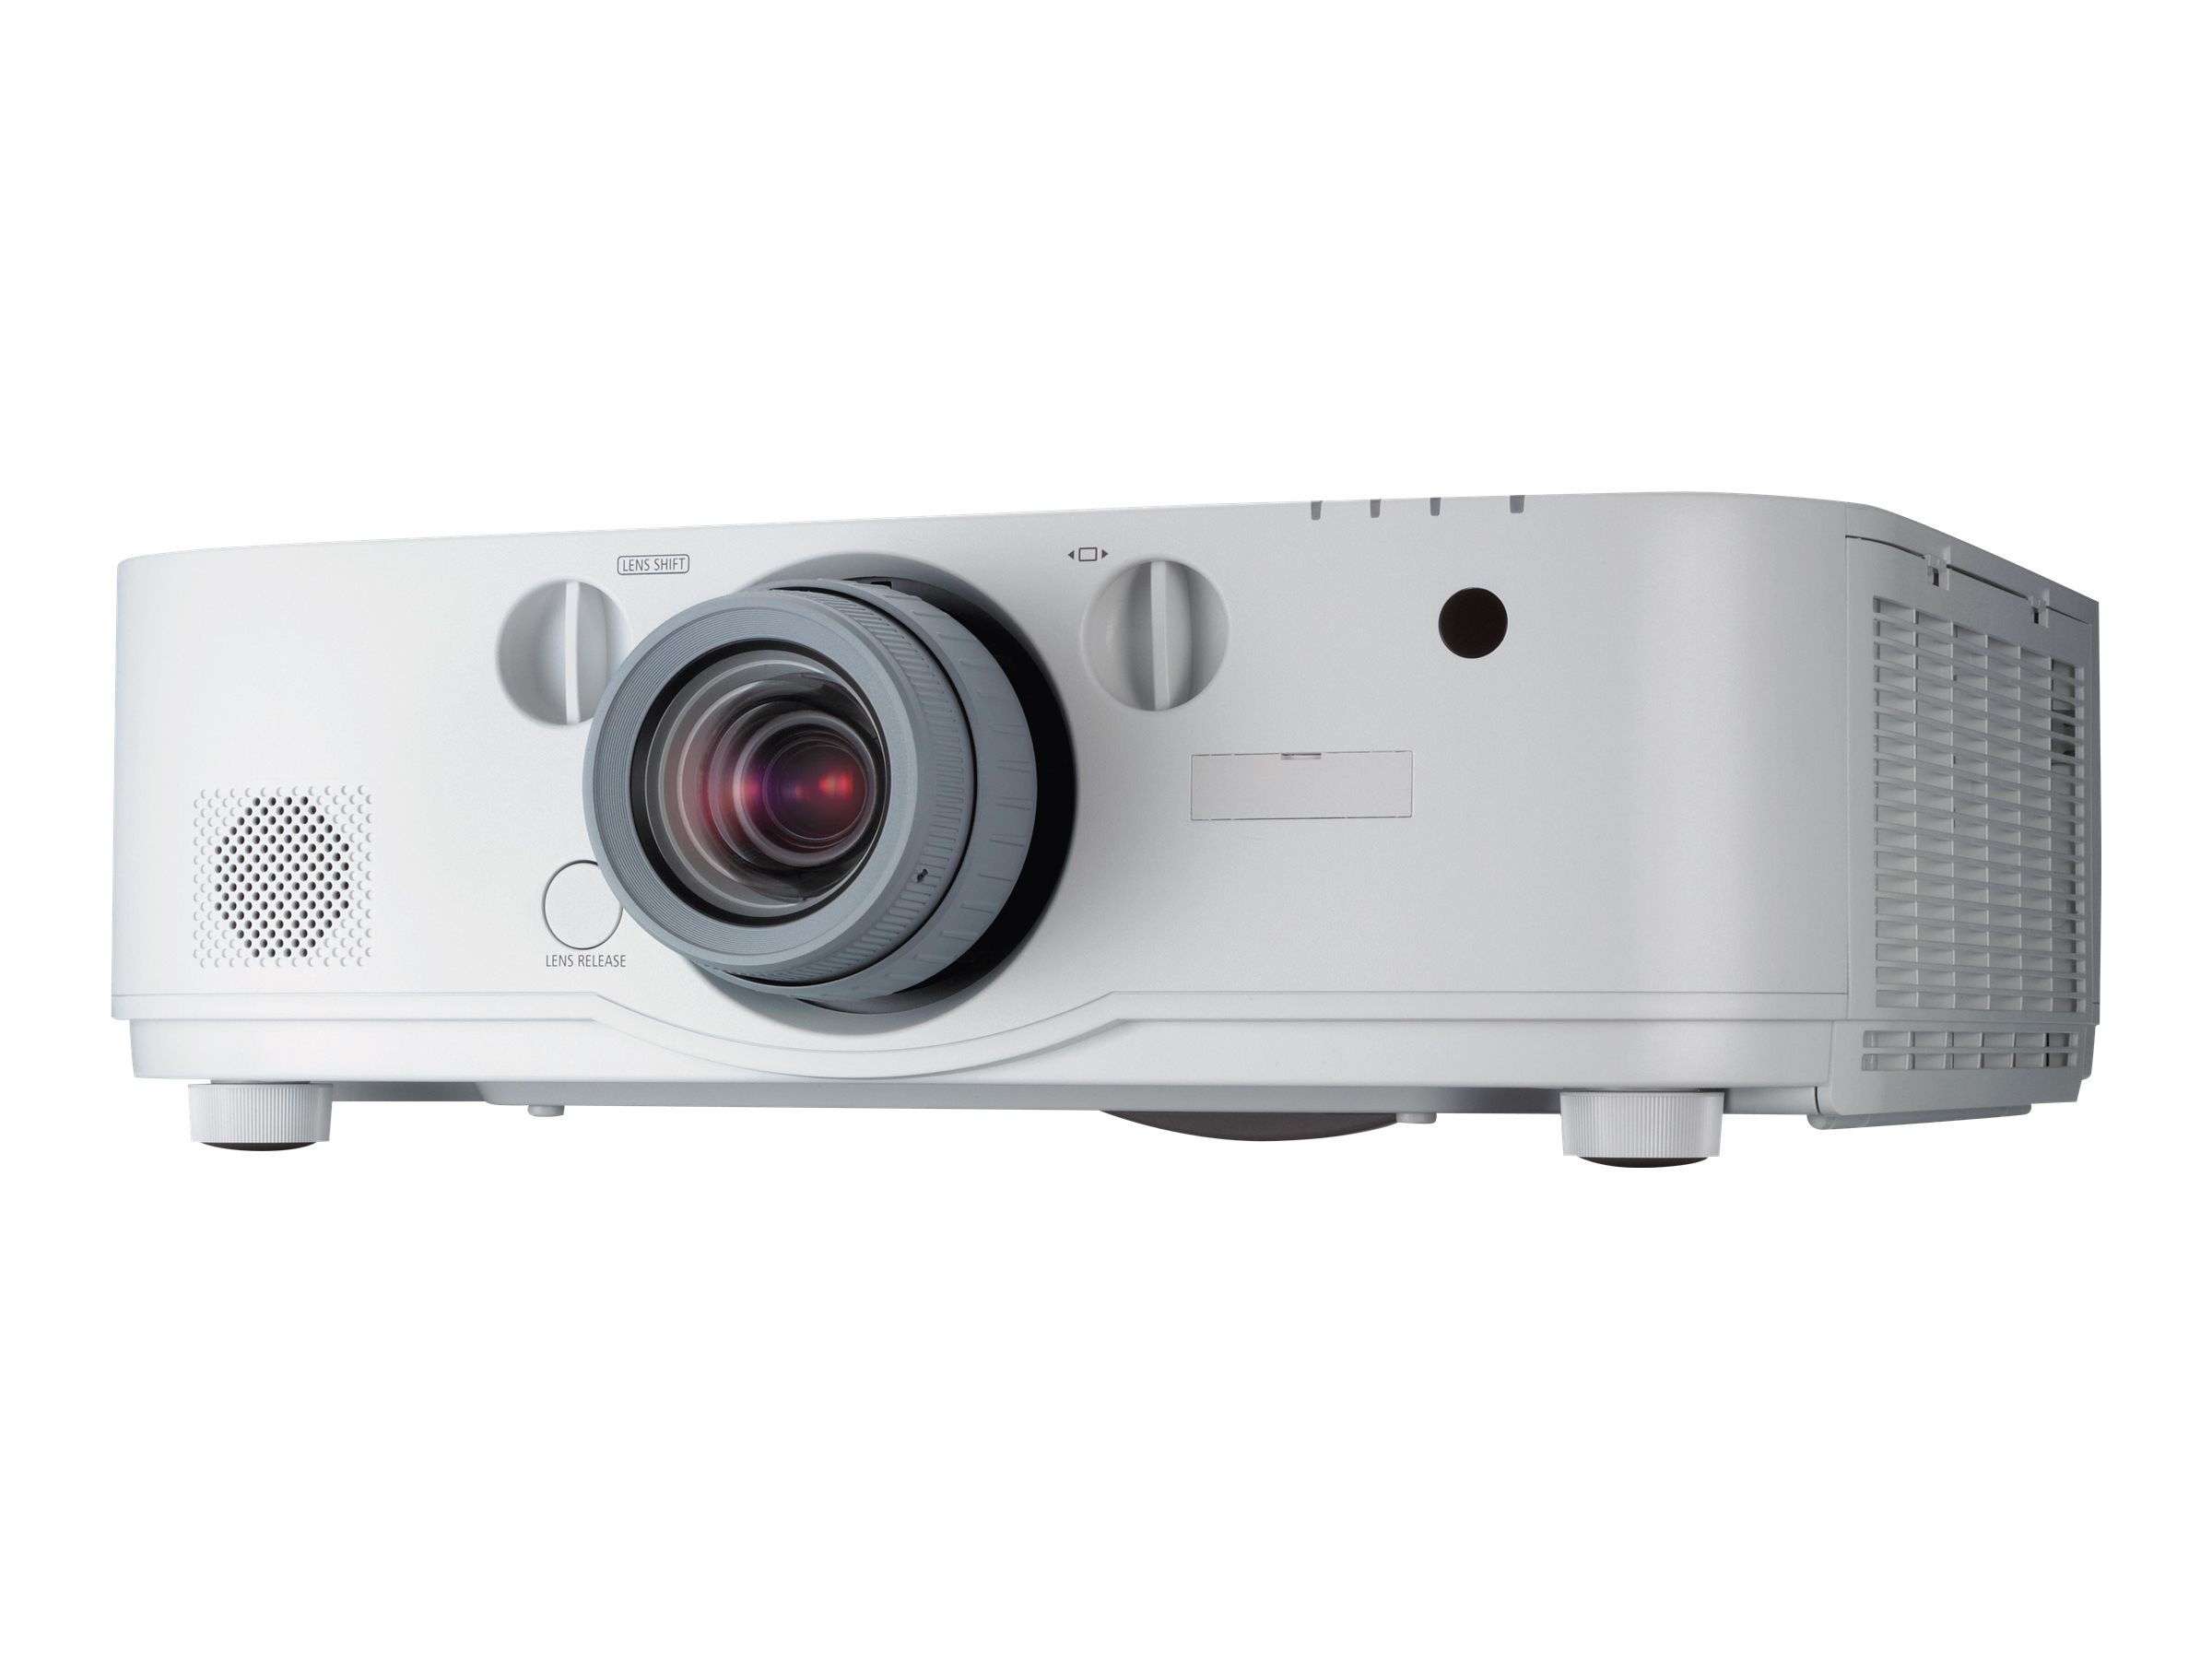 NEC NP-PA621X WXGA LCD Projector, 6200 Lumens, White with 1.5-3.0:1 Zoom Lens, NP-PA621X-13ZL